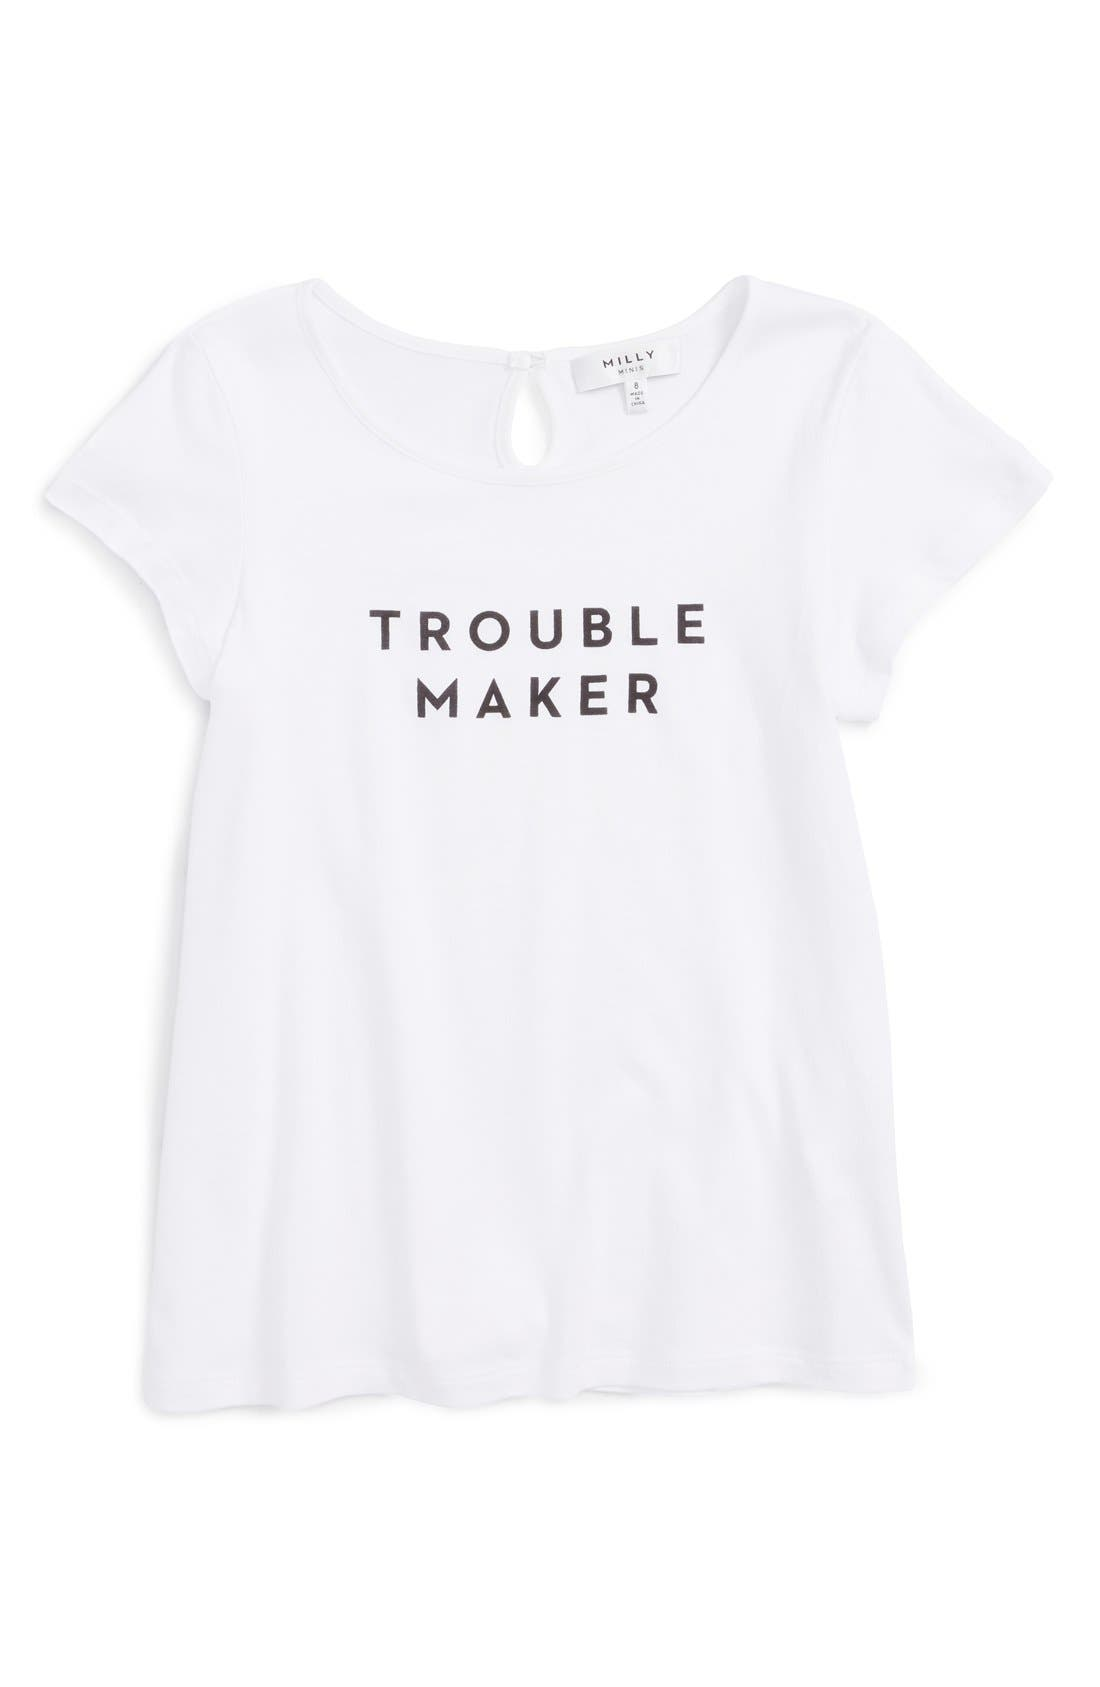 'Trouble Maker' Graphic Tee,                             Main thumbnail 1, color,                             White